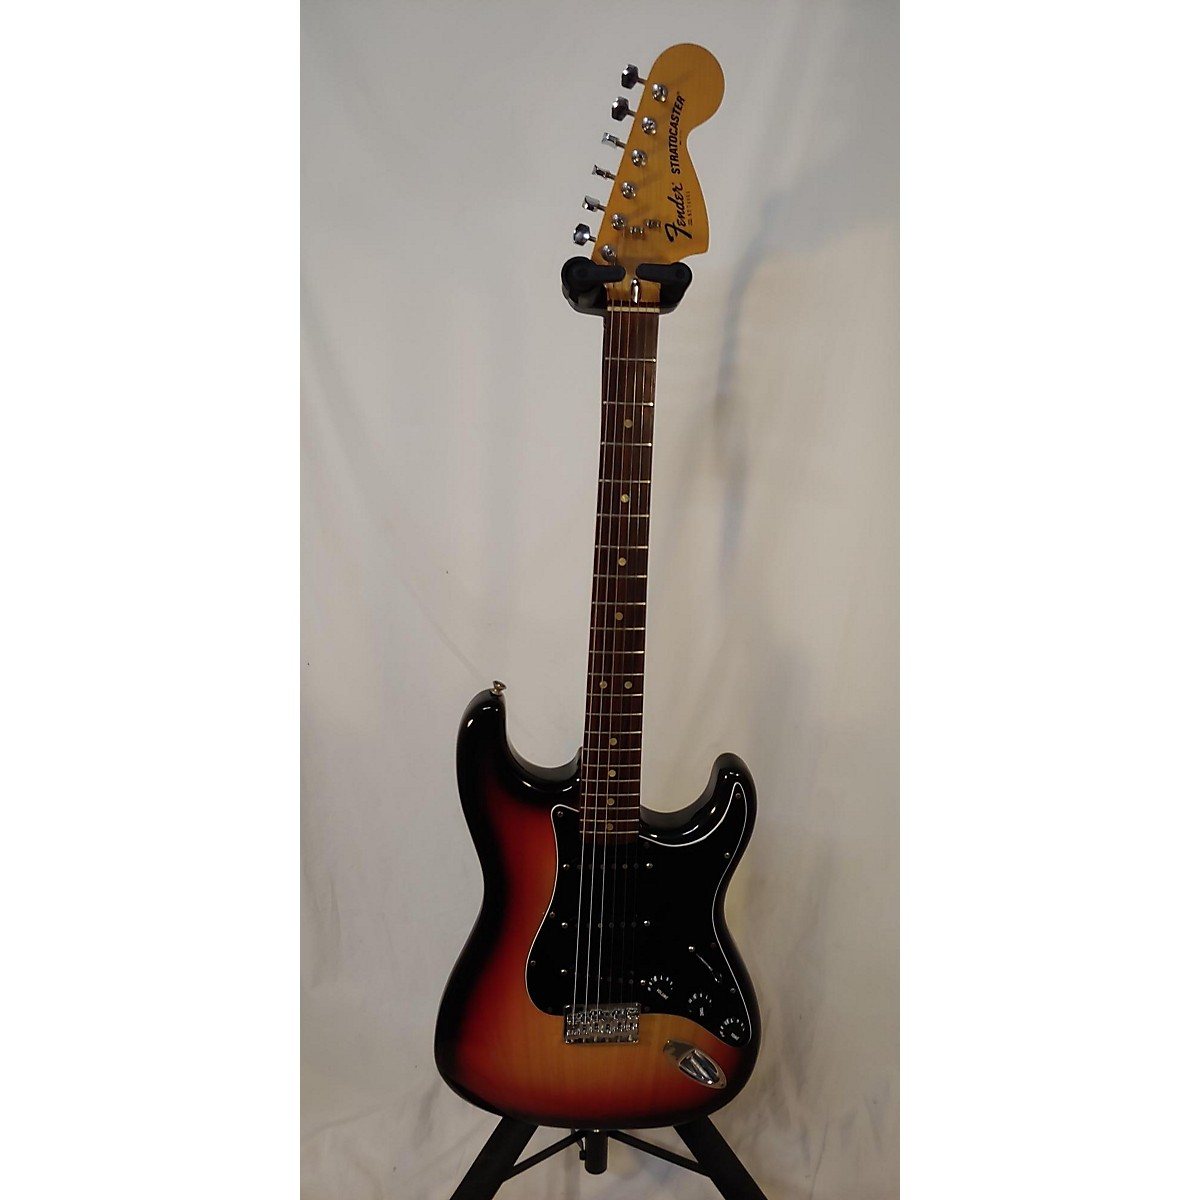 Fender 1977 Stratocaster Solid Body Electric Guitar